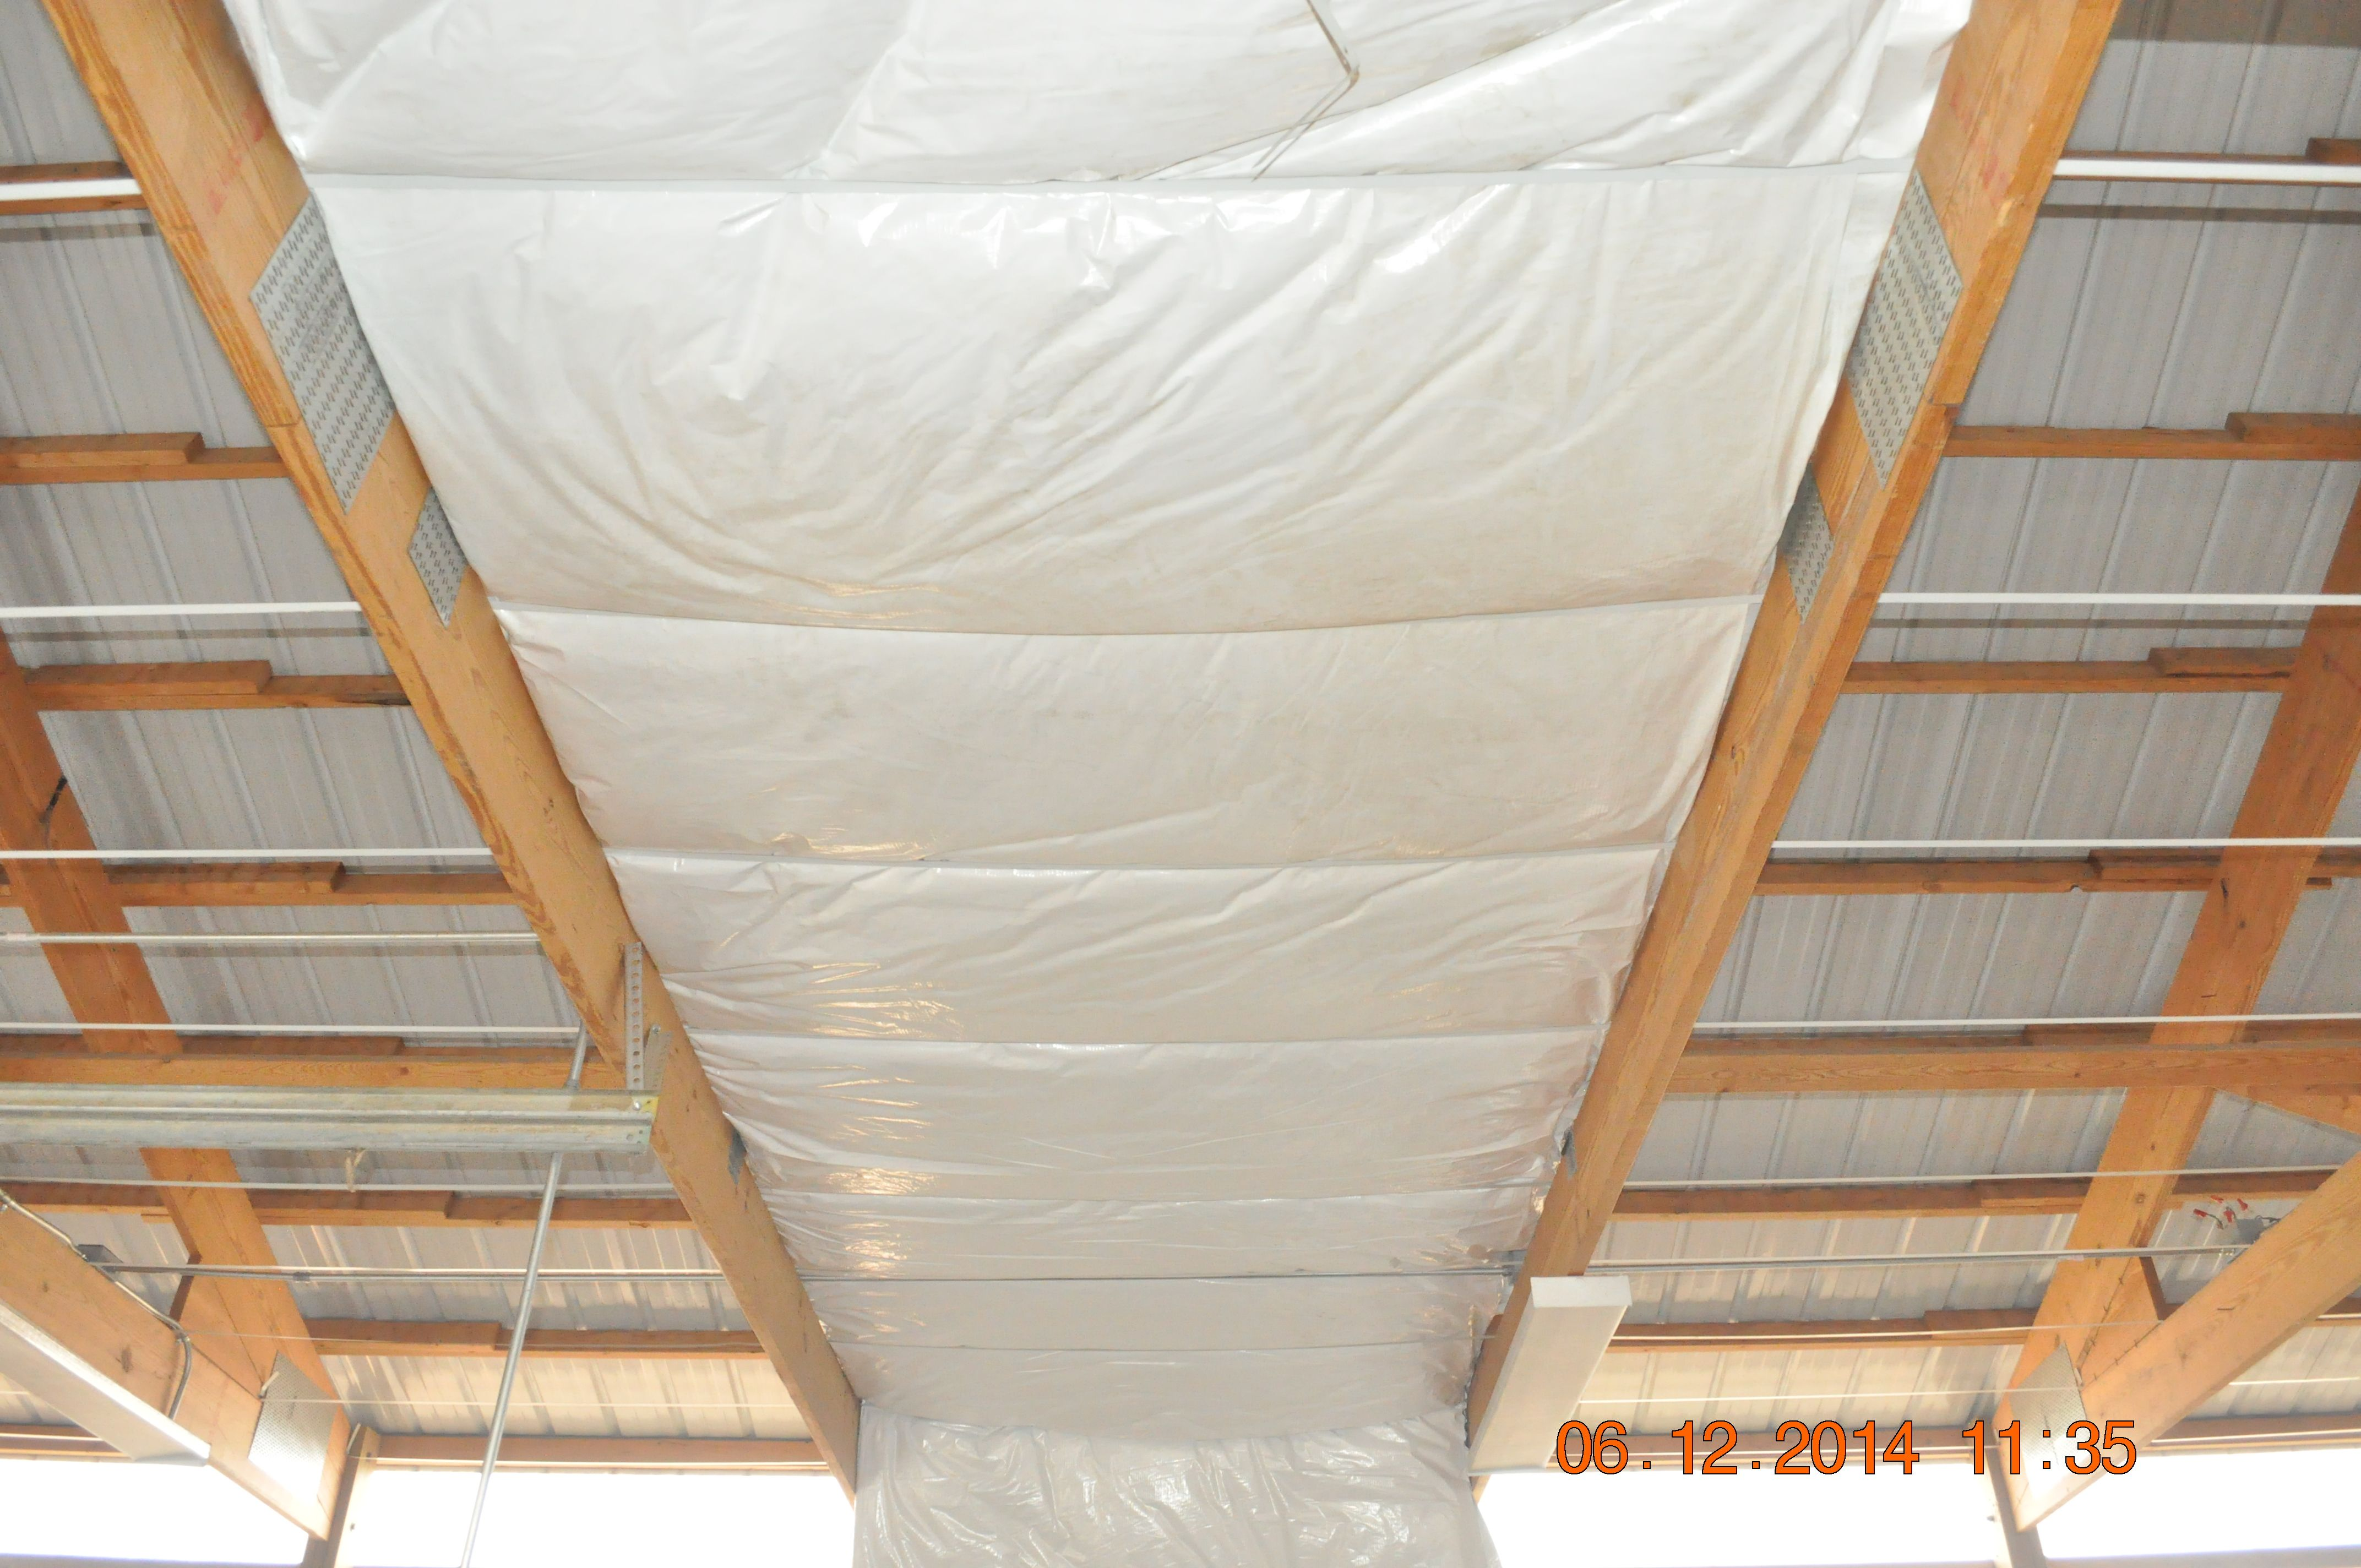 Pole Building Insulation Installed At The Bottom Of The Rafters